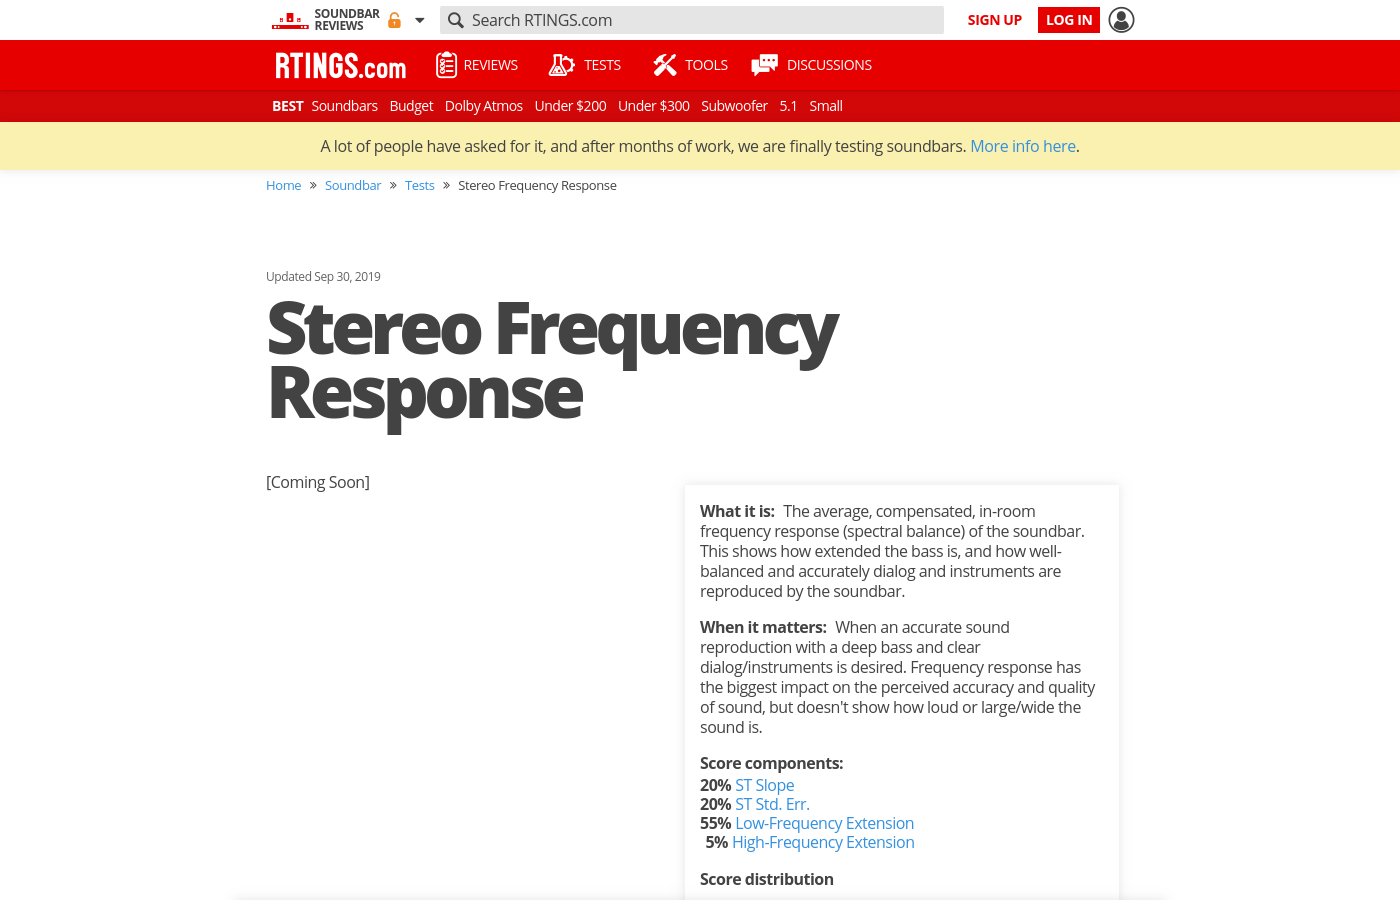 Stereo Frequency Response